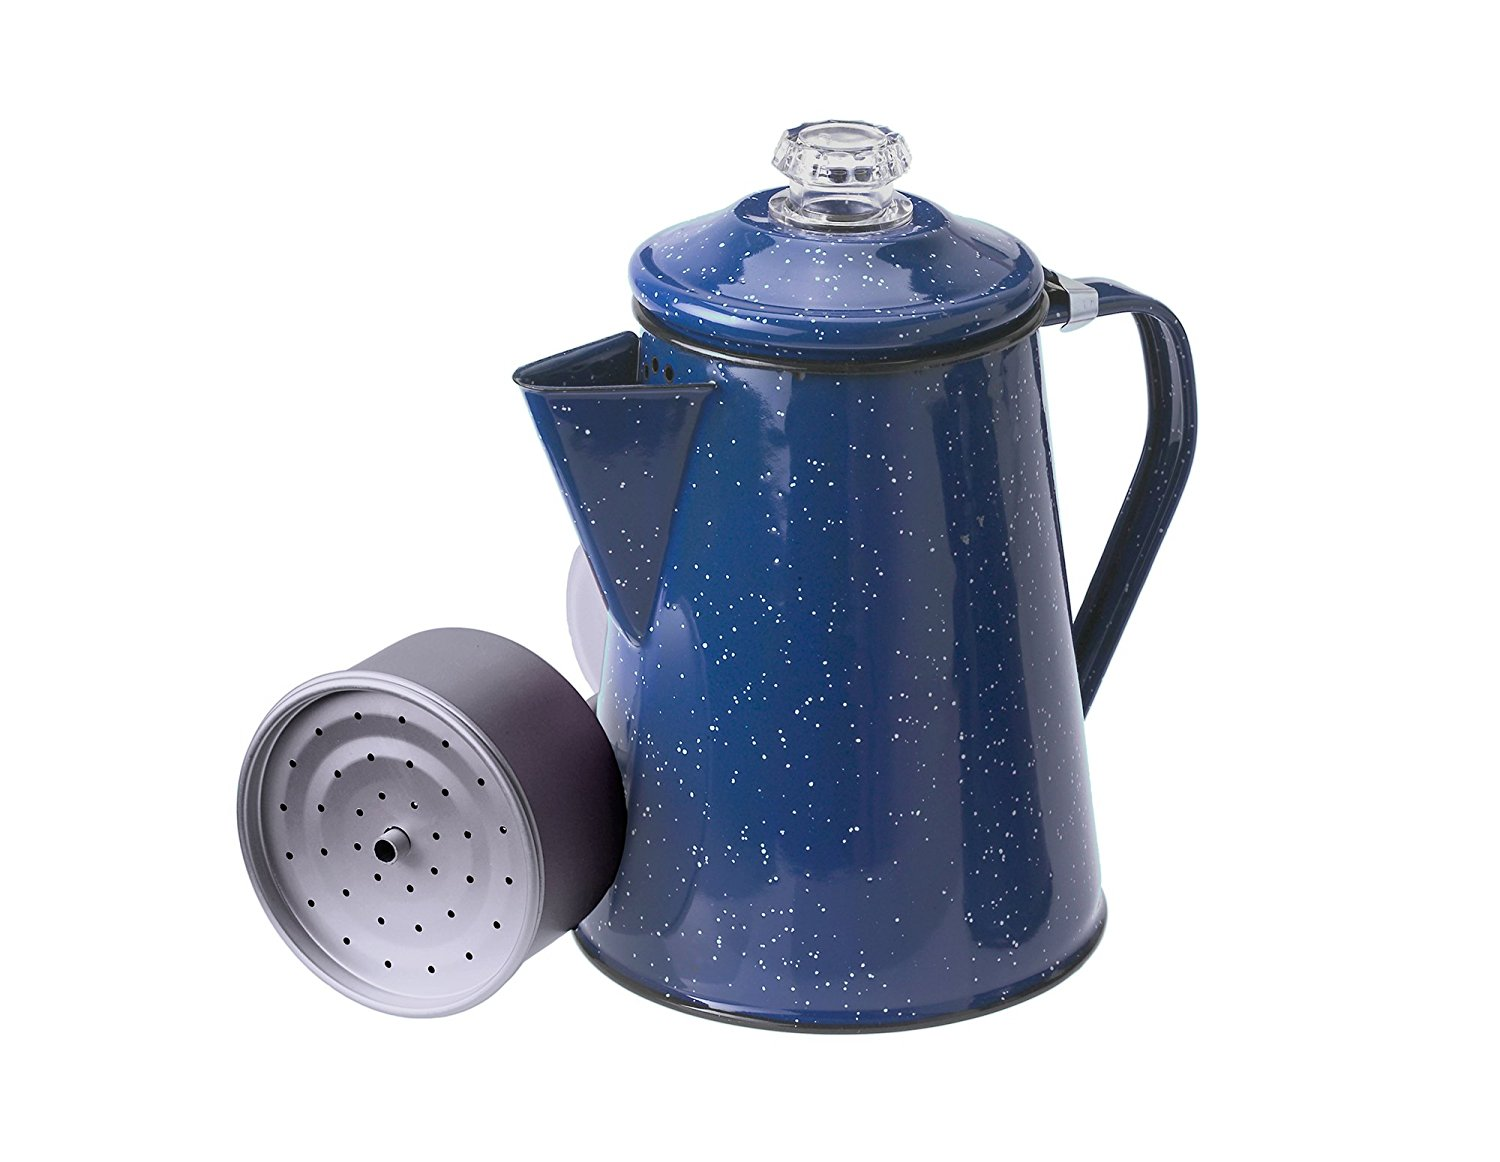 Outdoors - Emaille Kaffe kocher